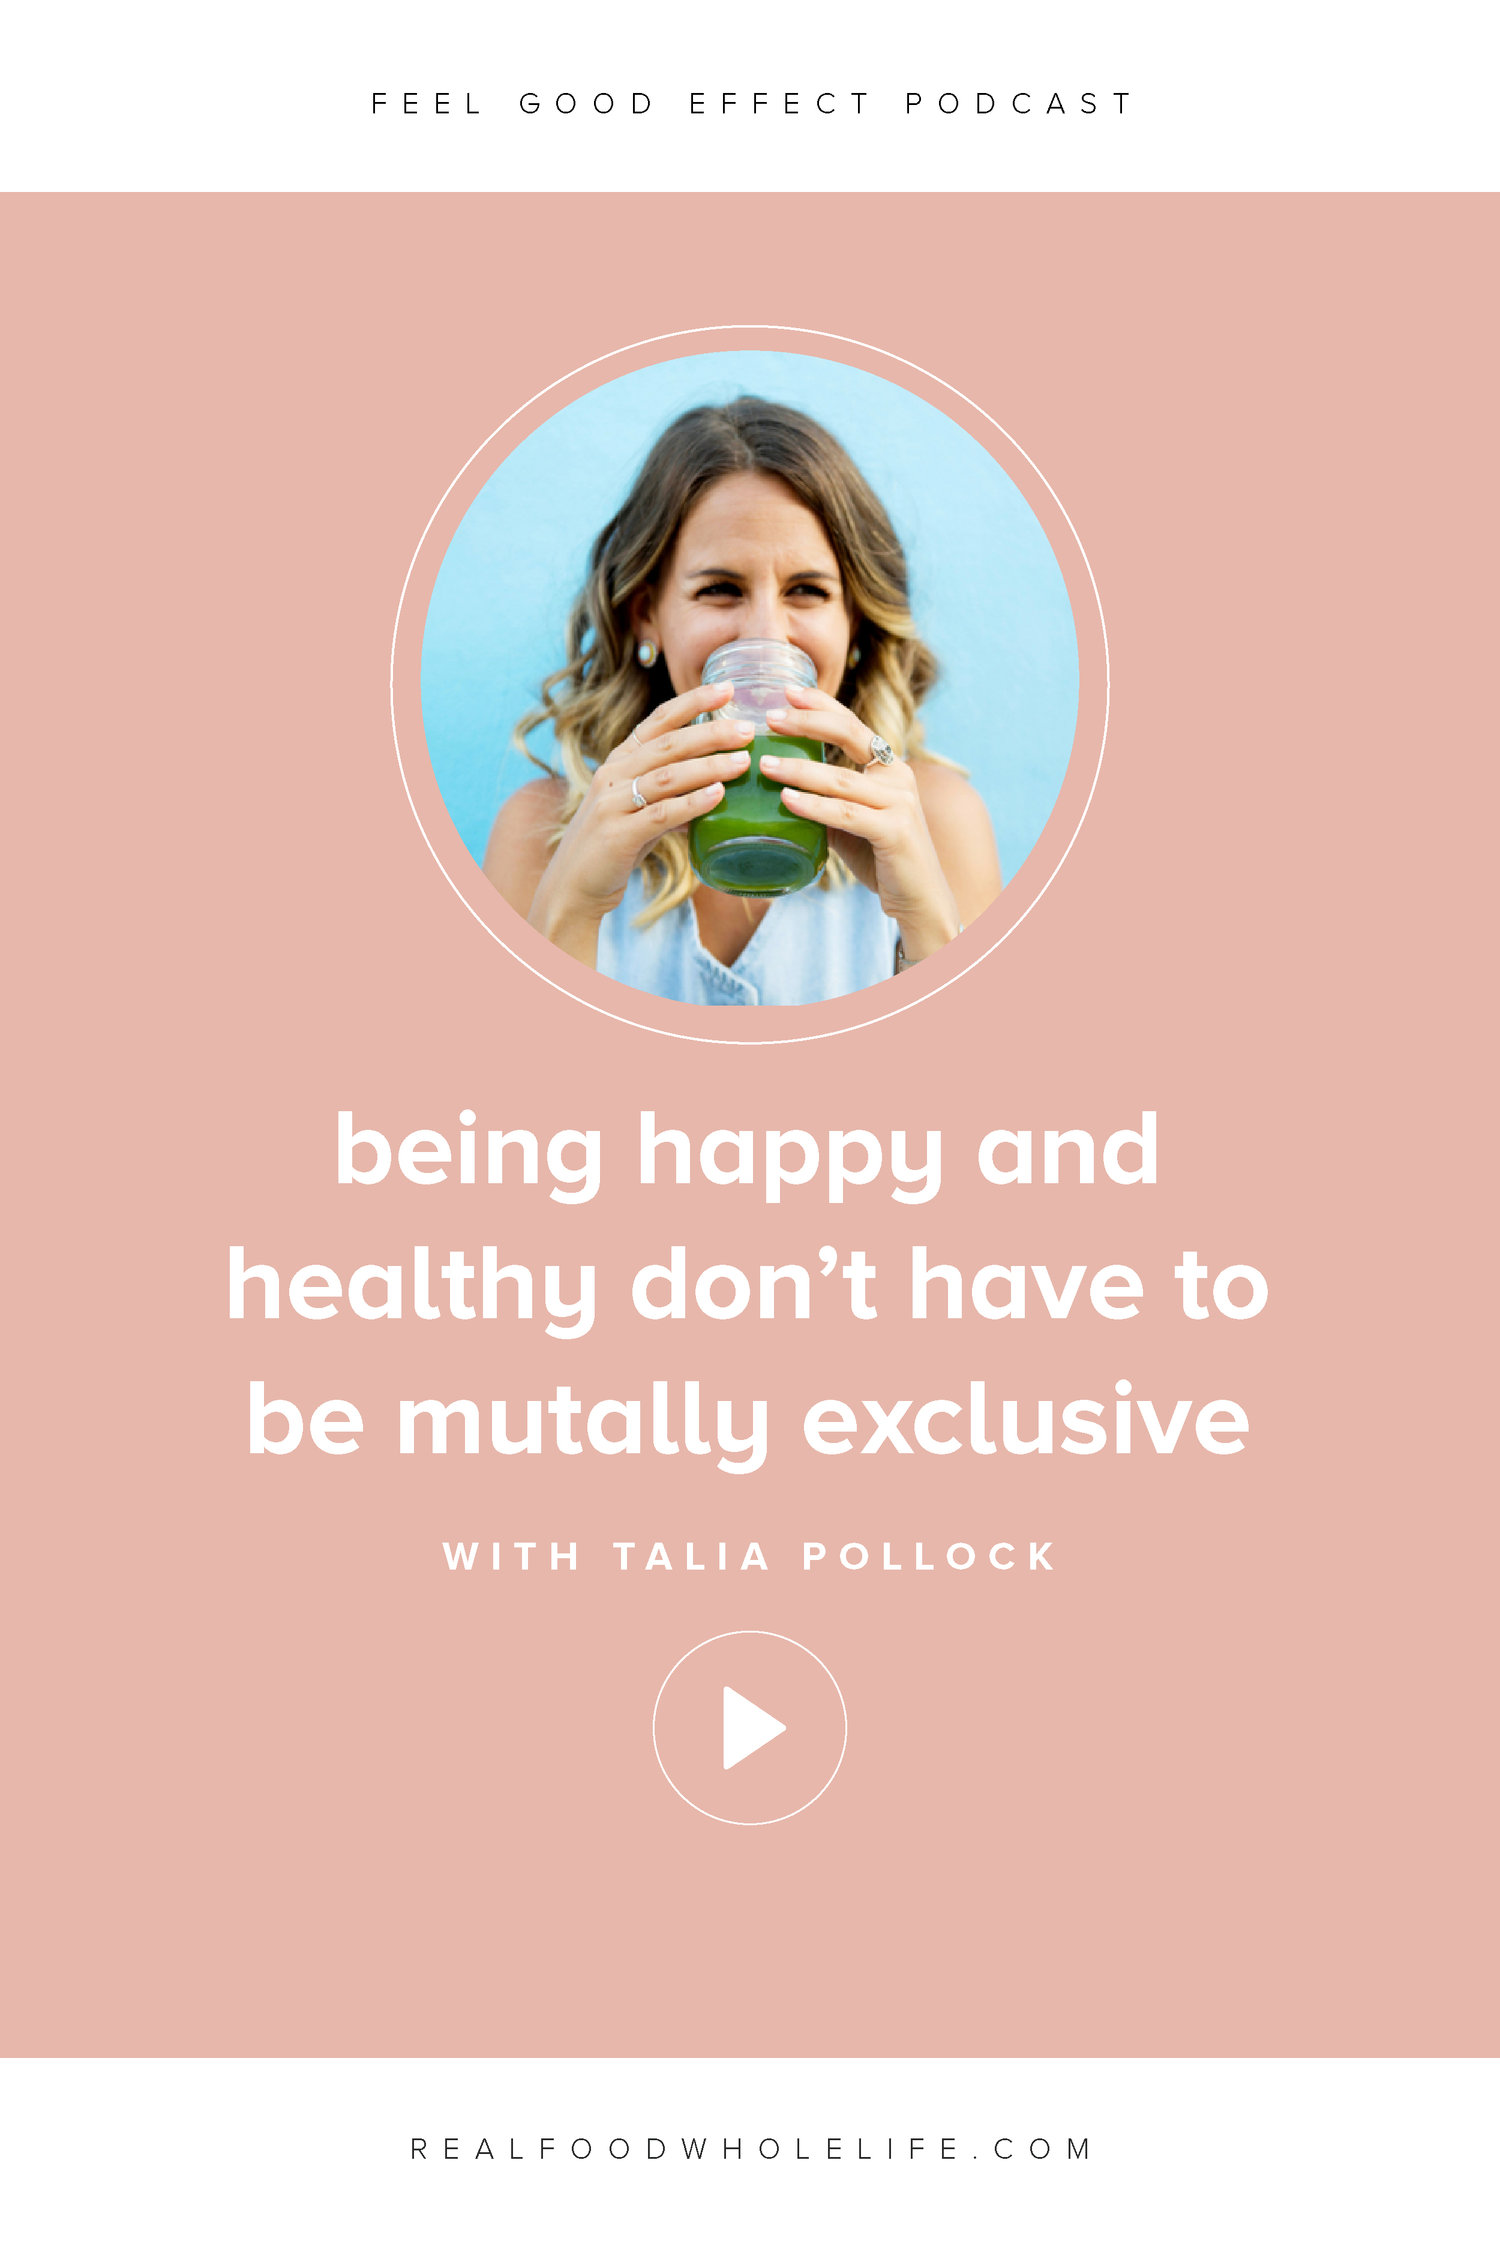 Season 3 — Feel Good Effect Podcast Show Notes — Real Food